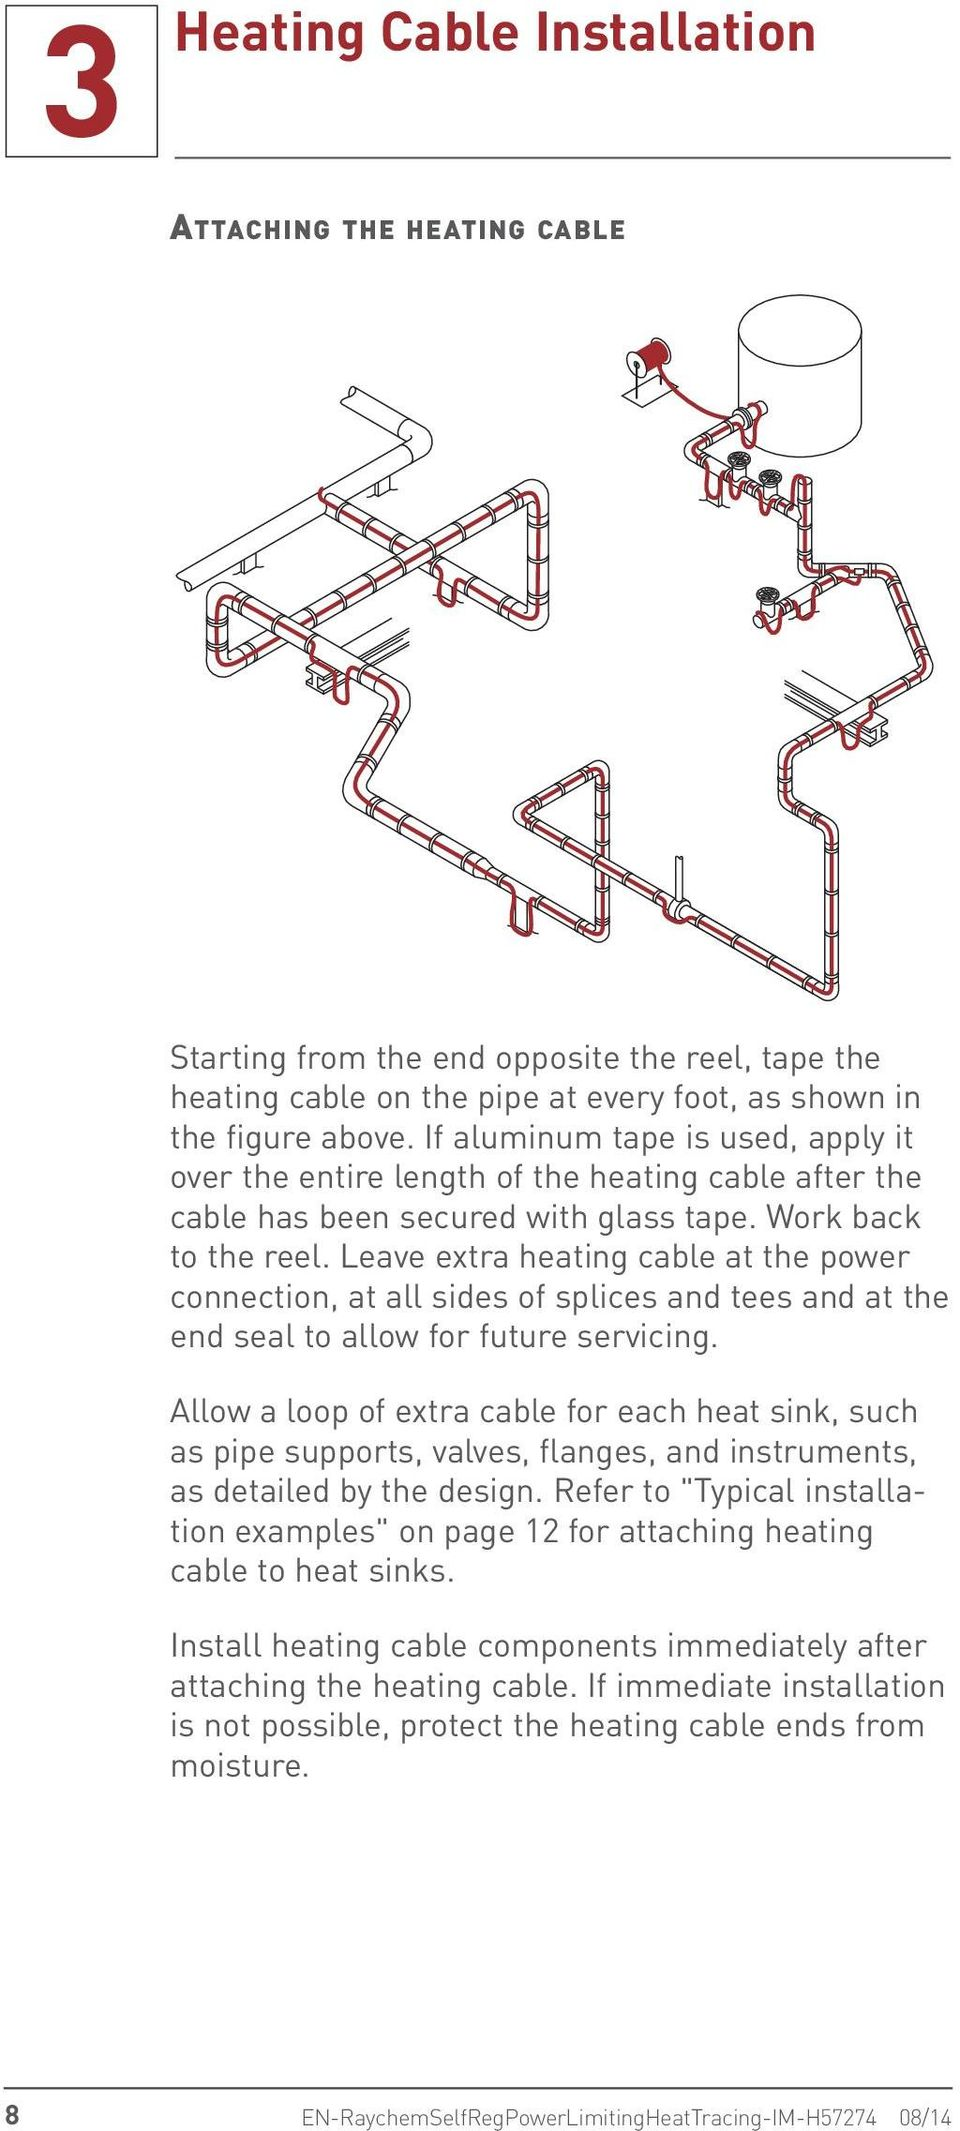 Leave extra heating cable at the power connection, at all sides of splices and tees and at the end seal to allow for future servicing.